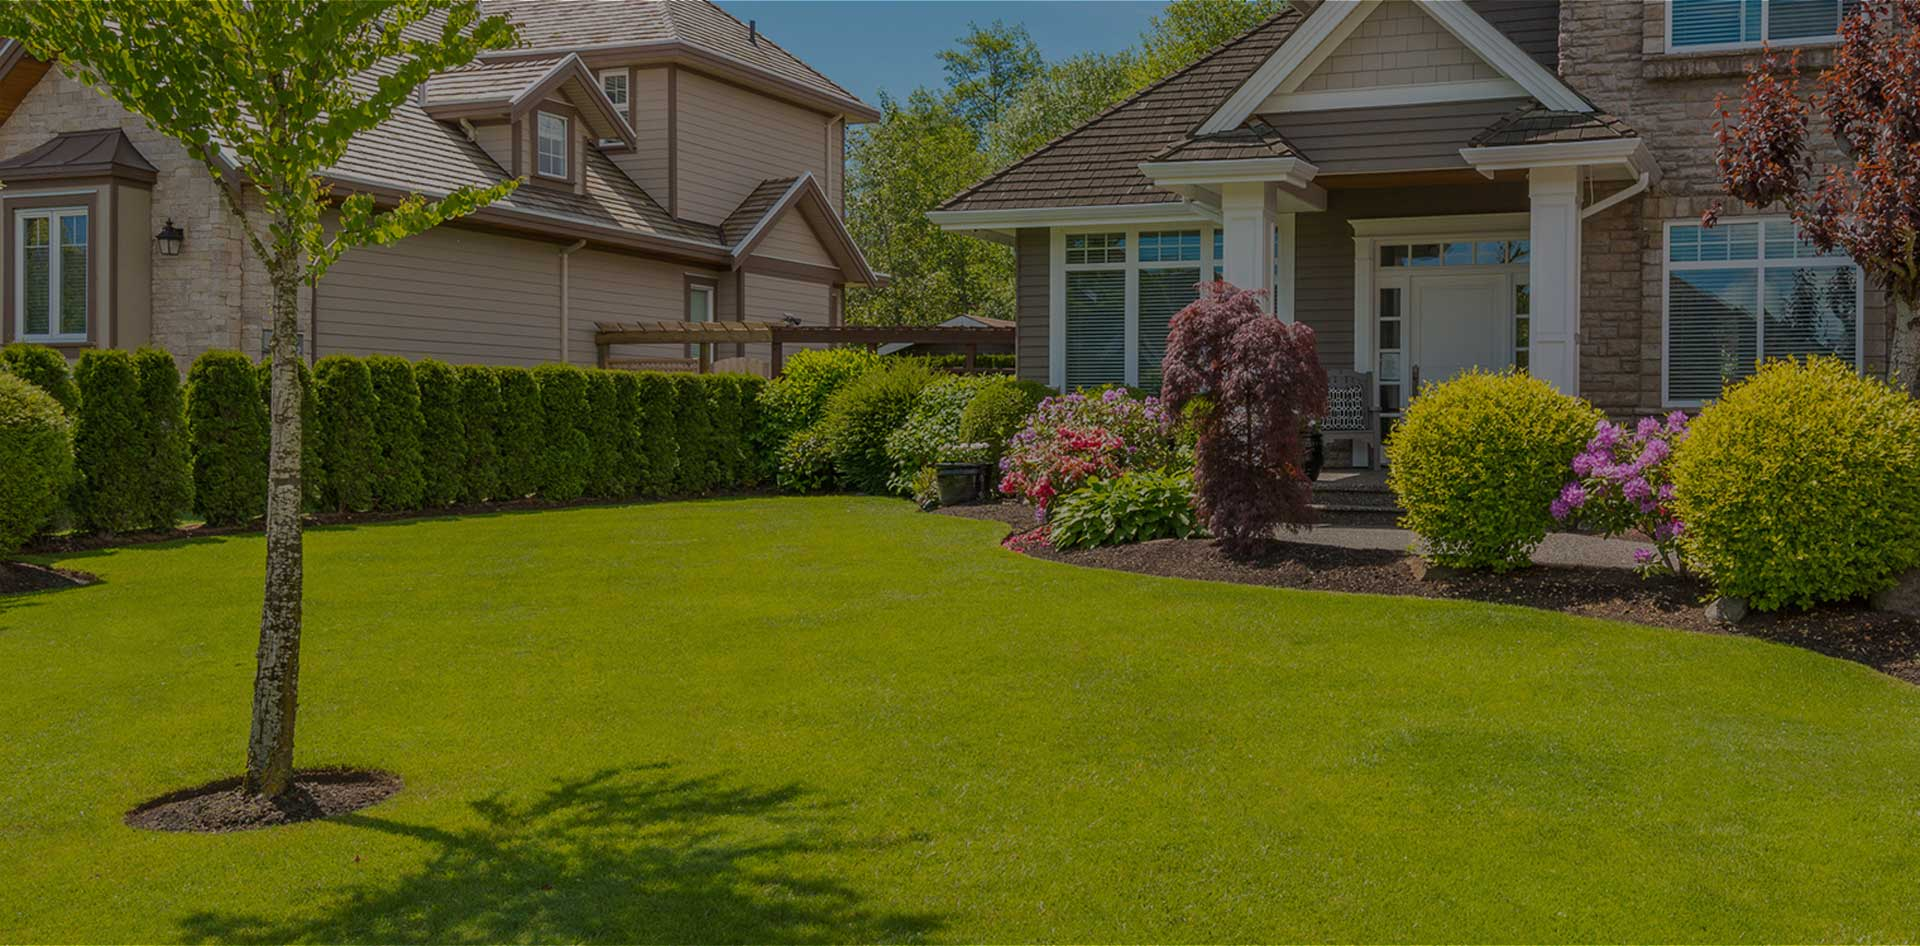 Digital Marketing for Landscaping Businesses